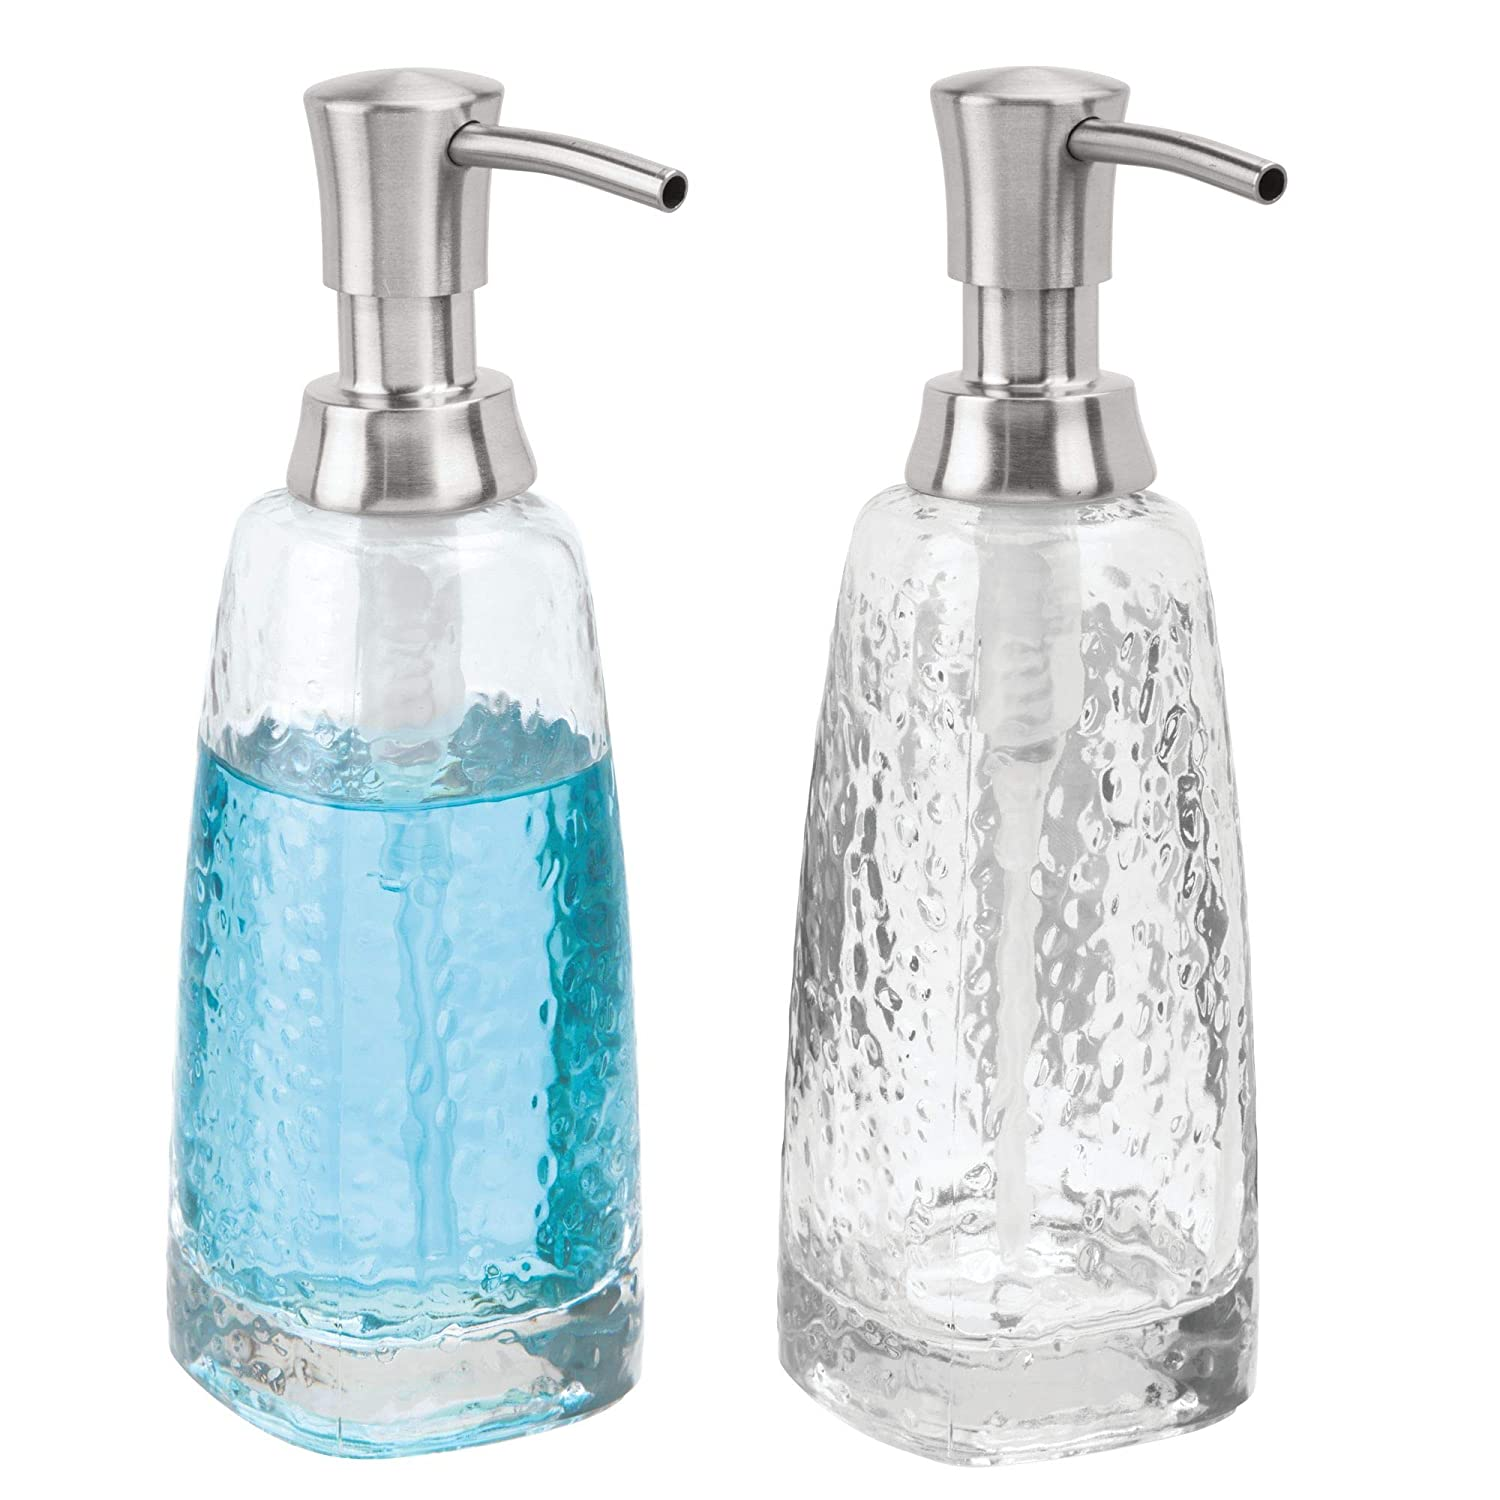 mDesign Decorative Glass, Tall Refillable Liquid Soap Dispenser Bottle with Rustproof Plastic Pump Head for Bathroom Vanity Countertops, Kitchen Sink, 2 Pack - Clear/Brushed MetroDecor